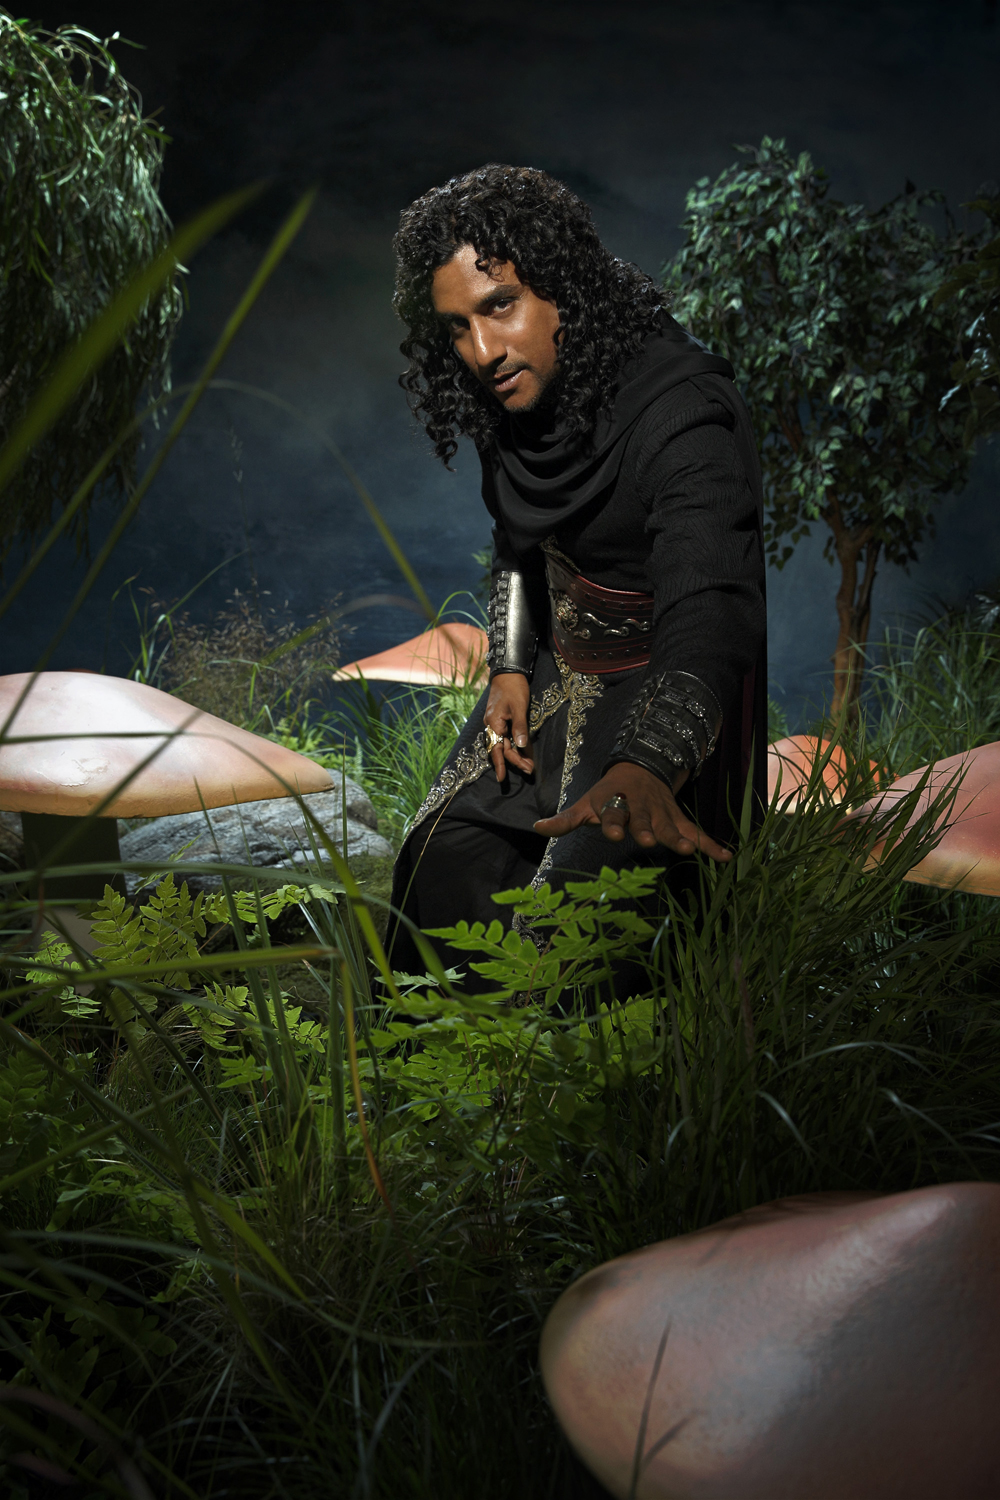 http://www.scifistream.com/wp-content/gallery/once-wonderland-cast-photos/cast_season1_jafar.jpg